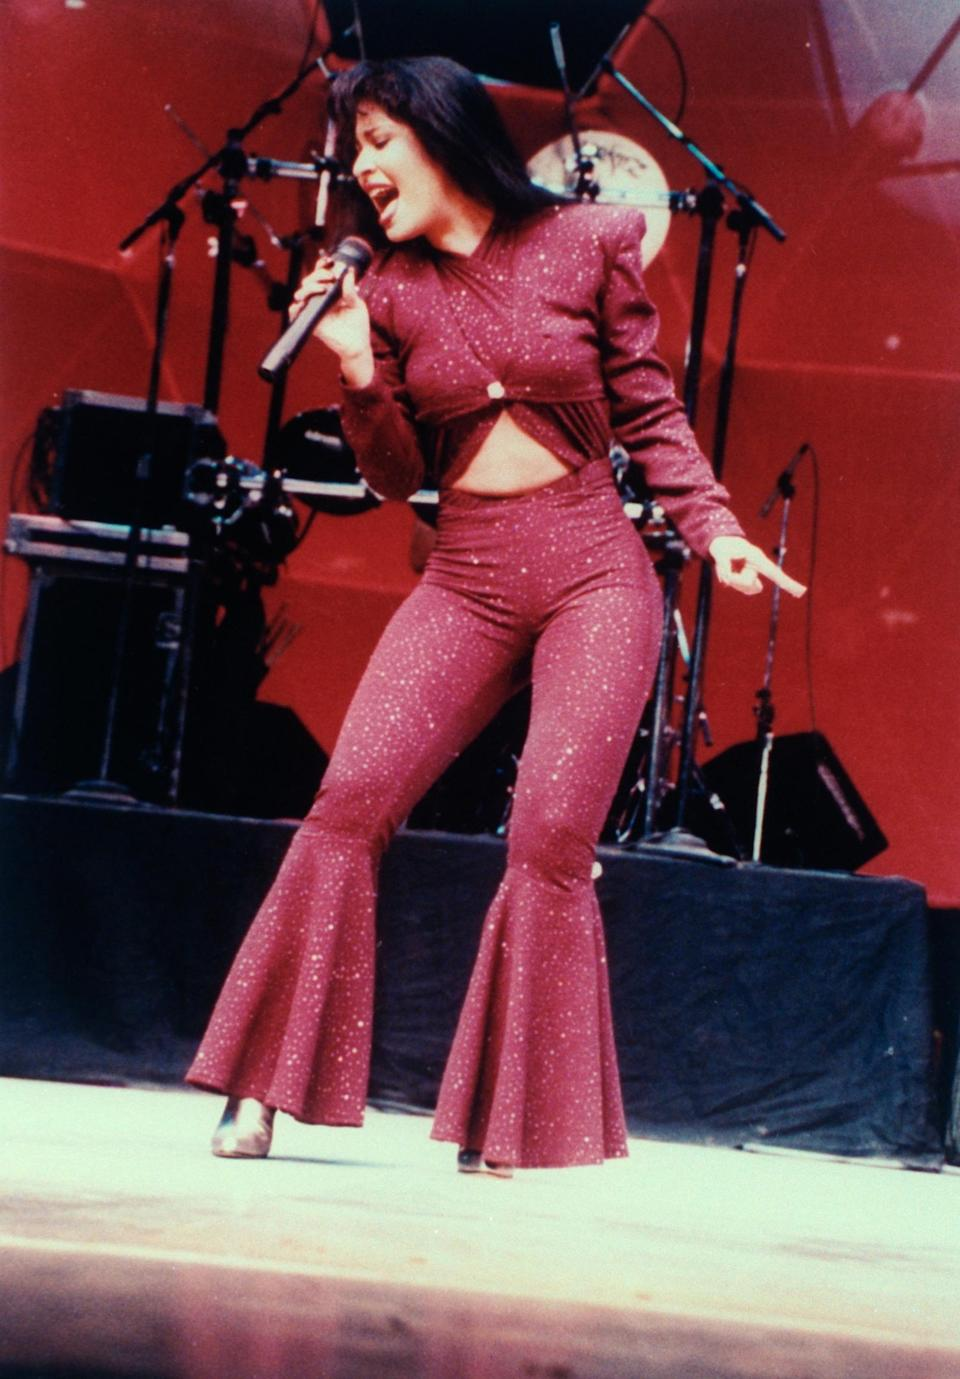 "<strong><h2>Selena</h2></strong>If you can withstand the memory of the late singer Selena without crying, I commend you. You will also be pleased to know that this costume is <u><a href=""https://www.costumeish.com/products/adult-latina-pop-star-costume?utm_medium=cpc&utm_source=googlepla&variant=8786820739"" rel=""nofollow noopener"" target=""_blank"" data-ylk=""slk:readily available online"" class=""link rapid-noclick-resp"">readily available online</a></u>.<span class=""copyright"">Photo: Arlene Richie/Media Sources.</span>"